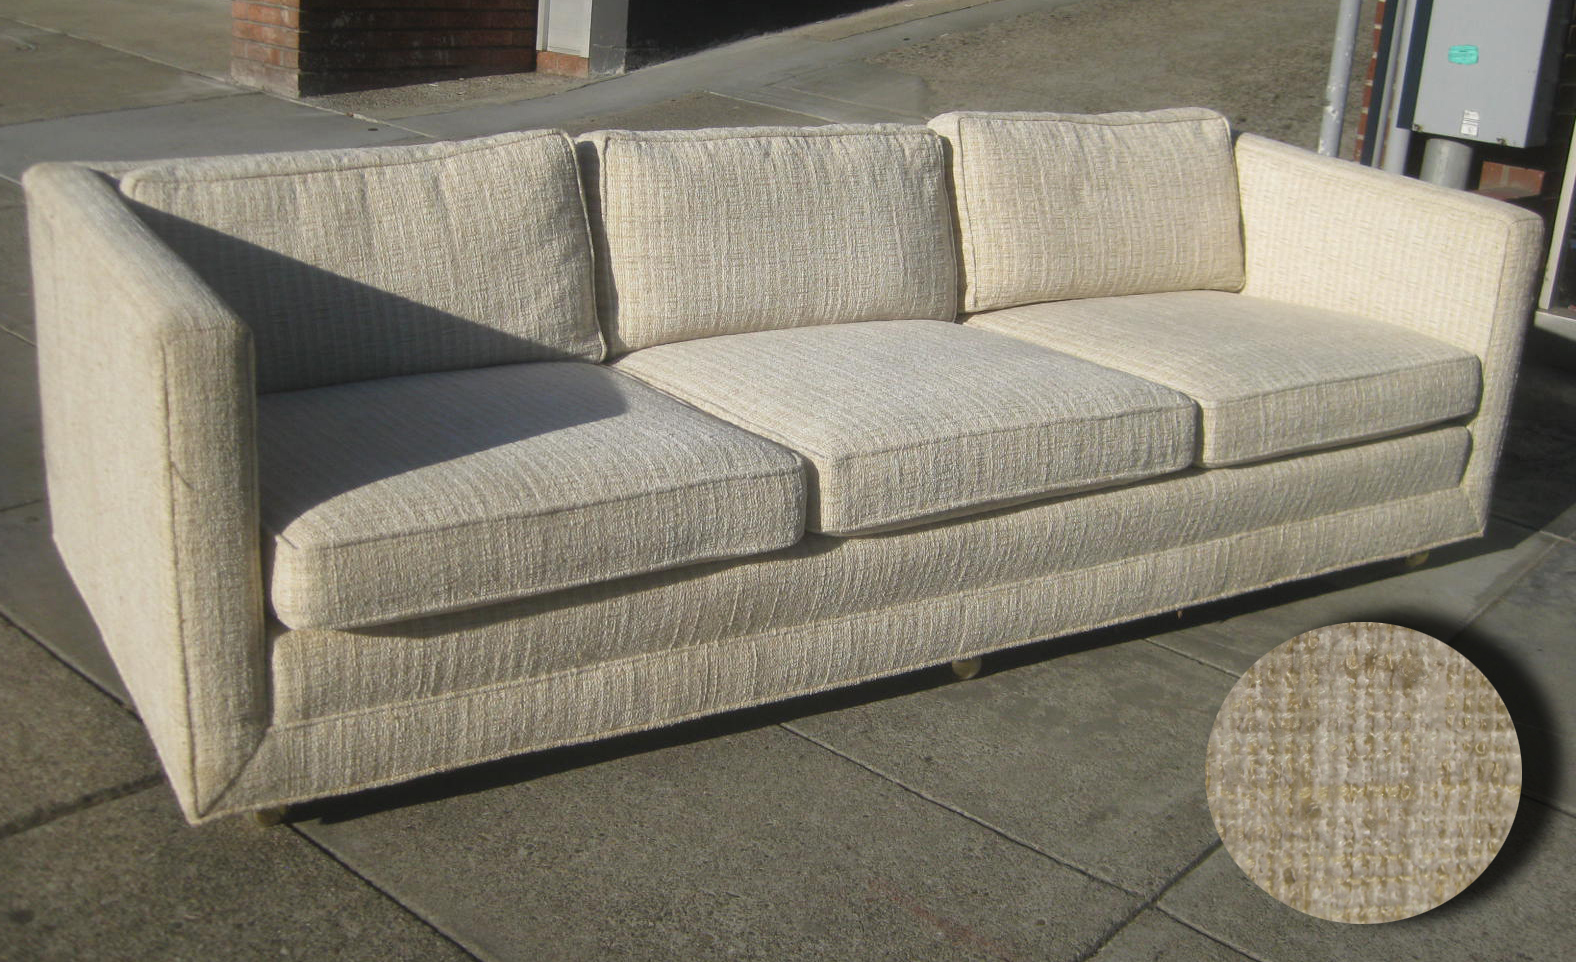 Low Profile Sectional Couches American HWY : SofaLowProfile from www.americanhwy.us size 1576 x 962 jpeg 1026kB